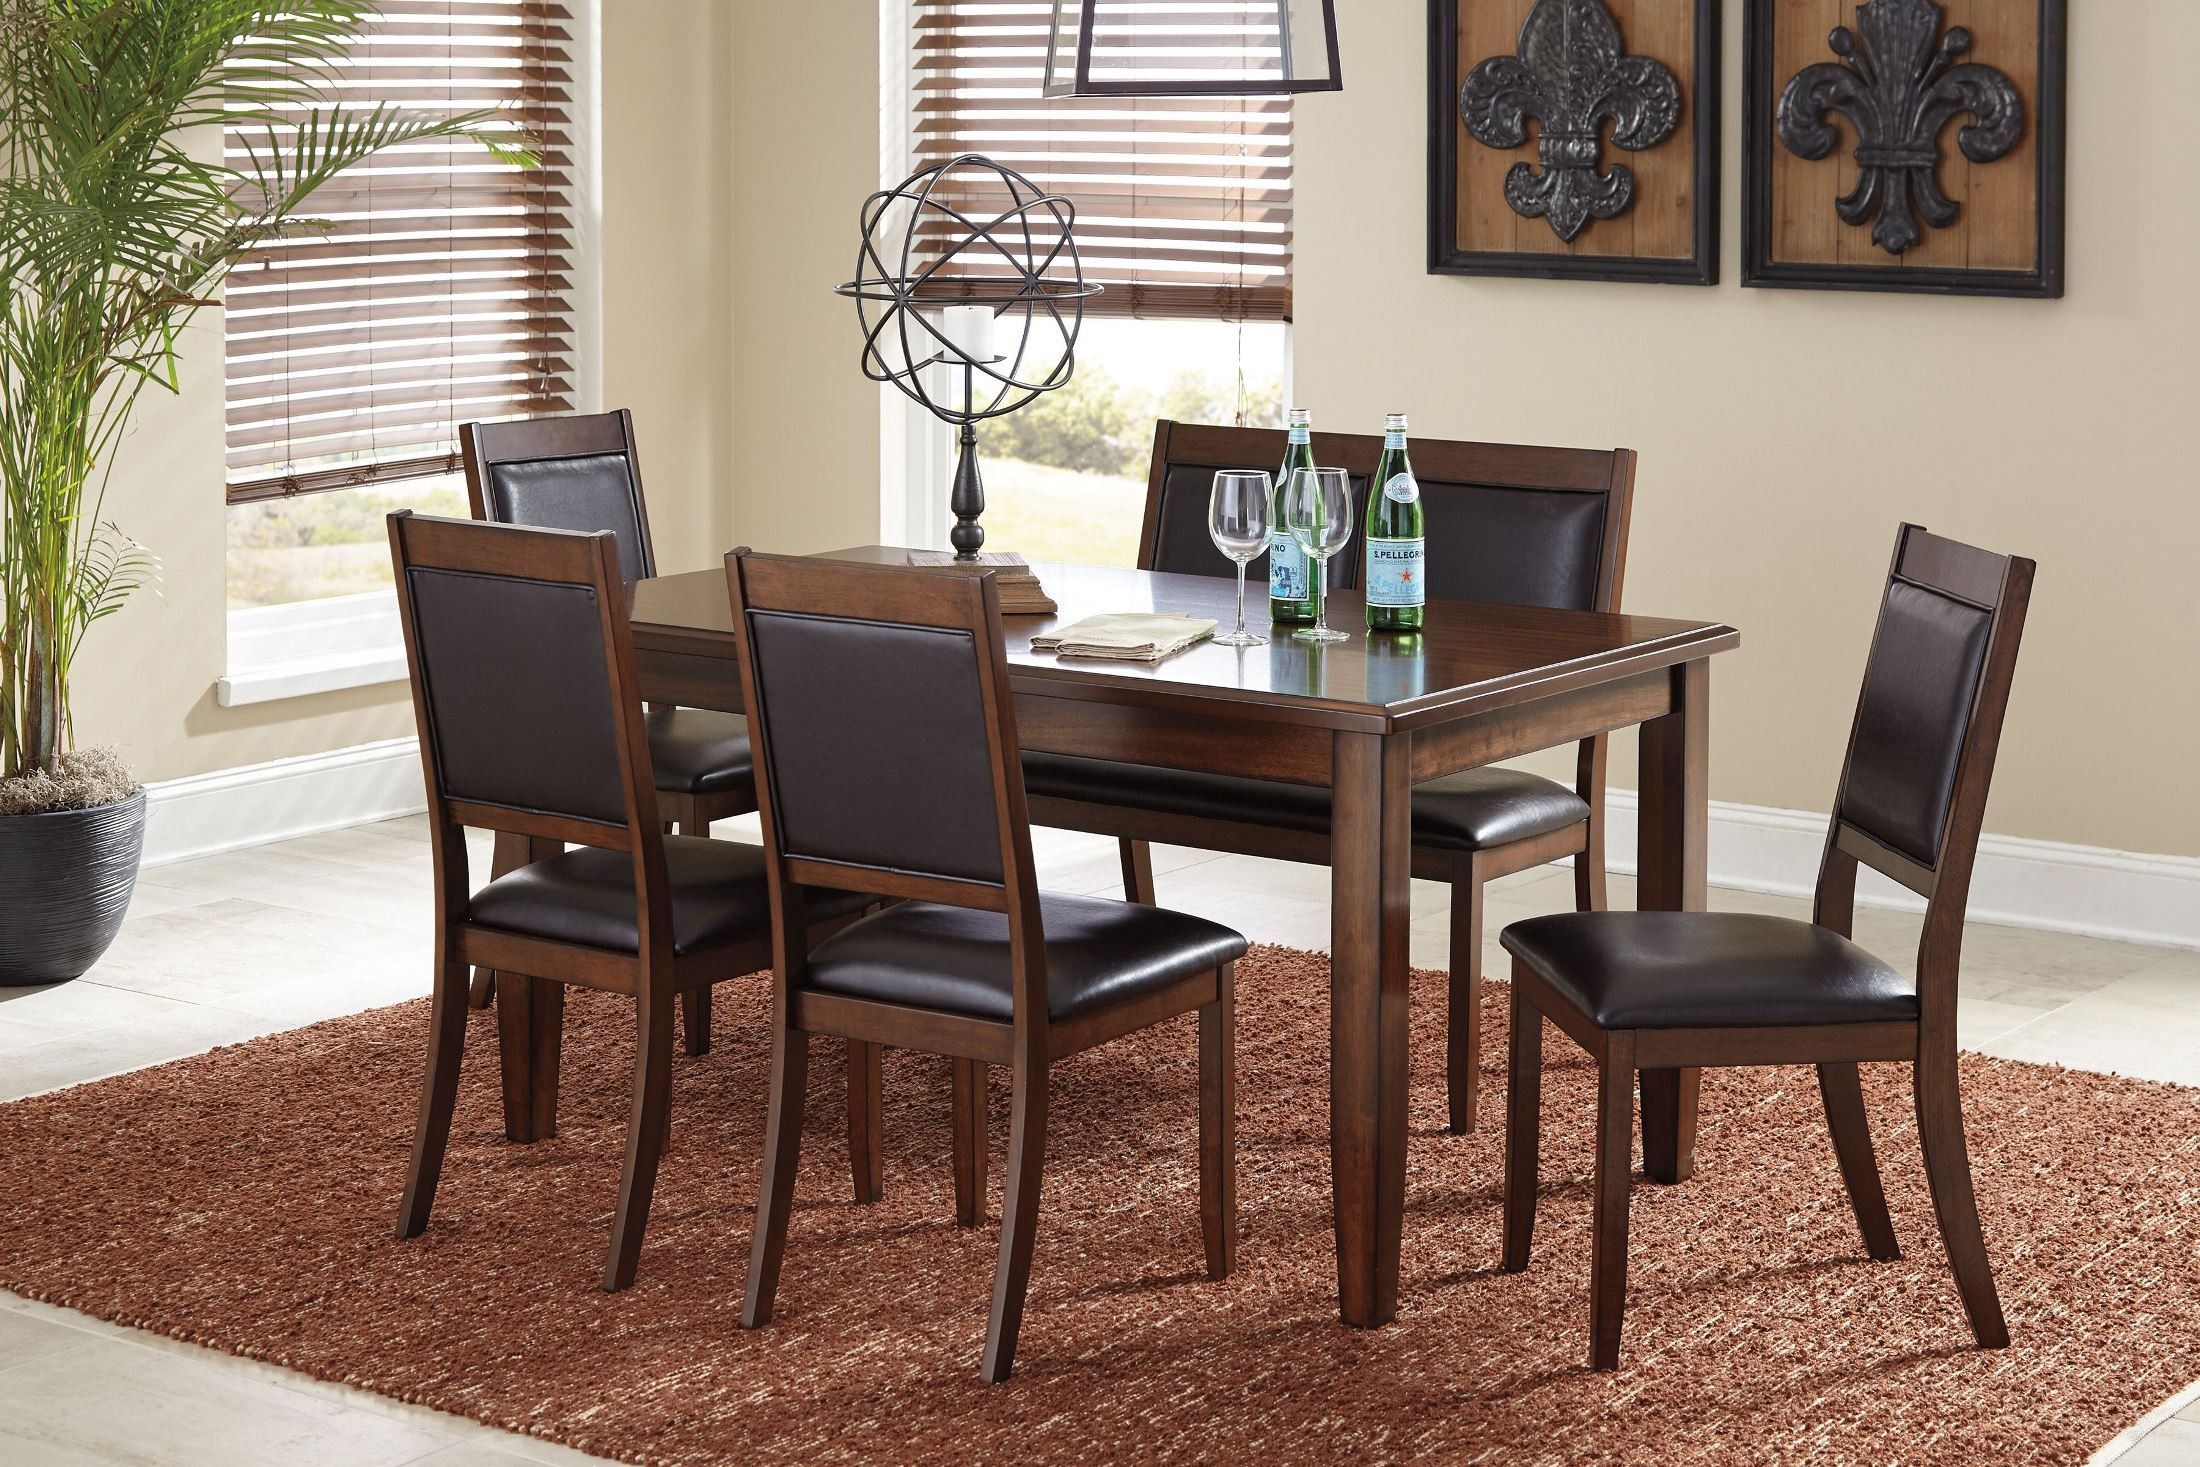 meredy brown 6 piece dining room set from ashley coleman furniture. Black Bedroom Furniture Sets. Home Design Ideas